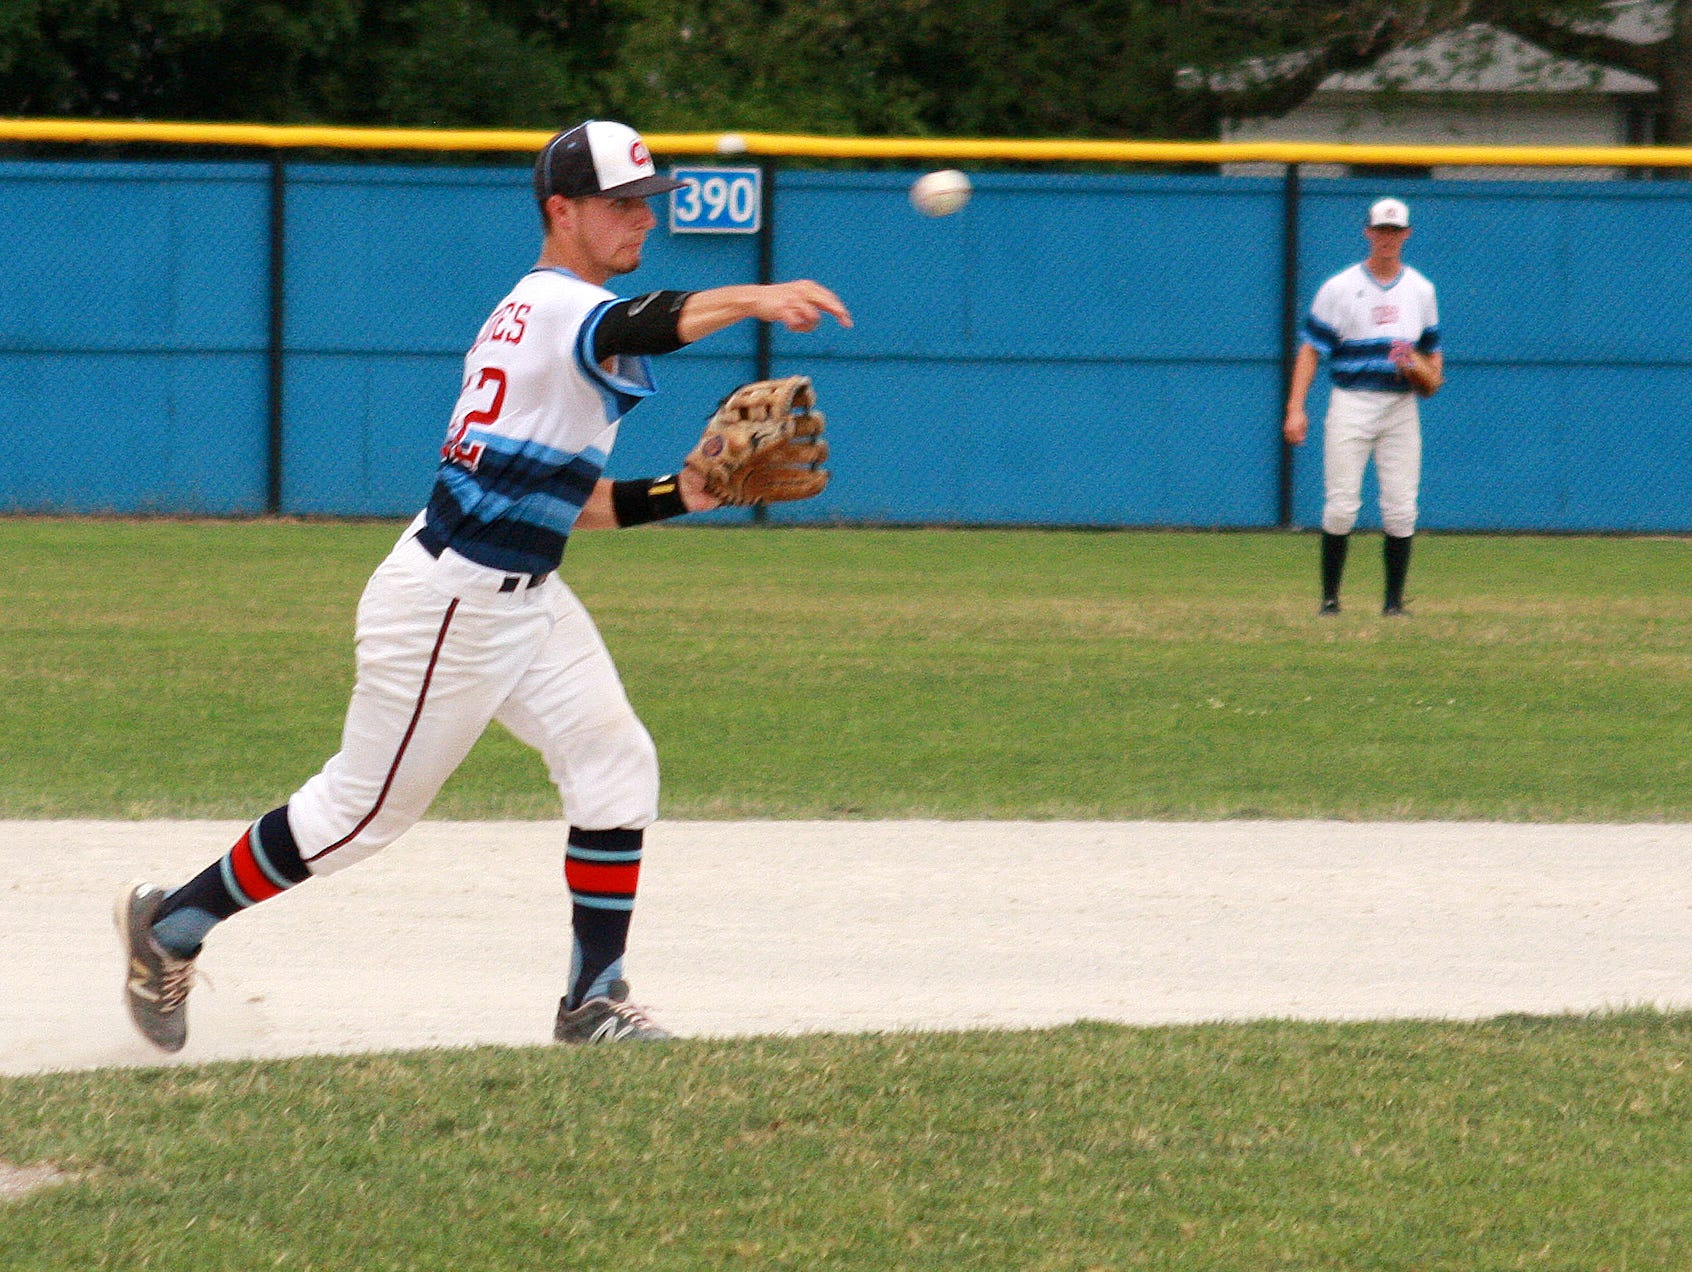 Nate Jones, formerly of Lakeview, plays for Midwest Athletics at the Connie Mack Regional at Bailey Park on Thursday.